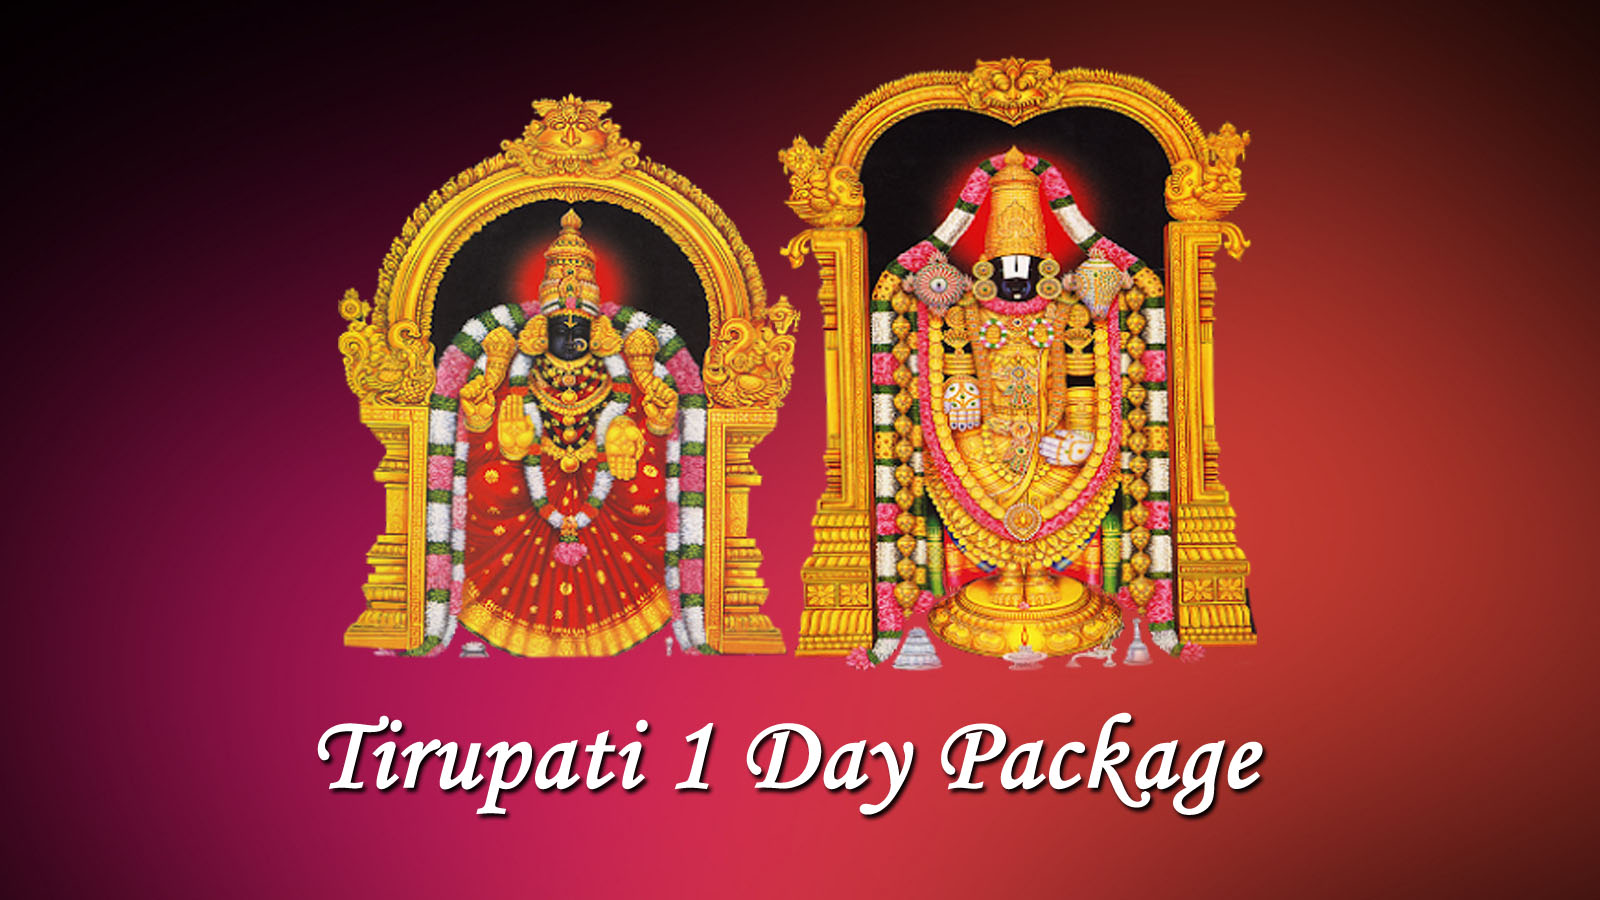 chennai to tirupati one day tour package